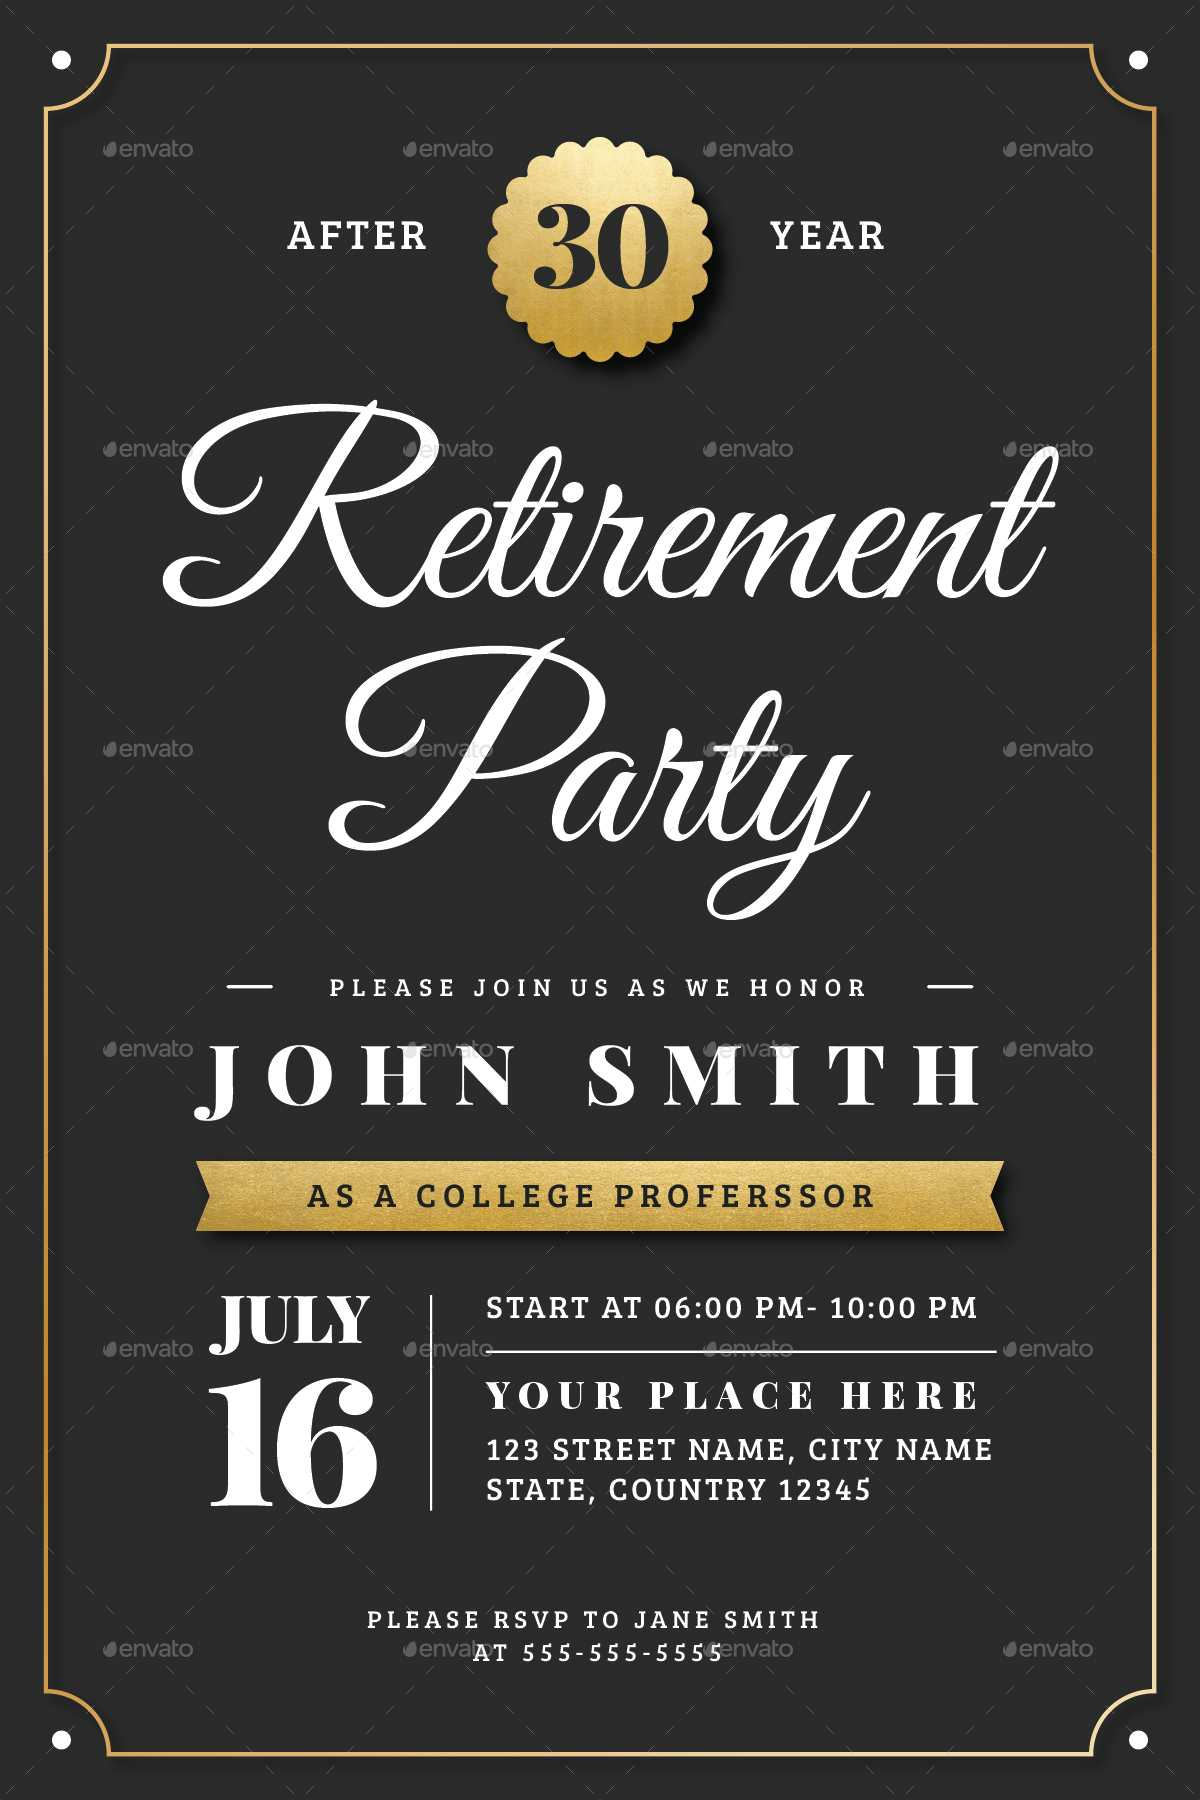 003 Retirement Flyer Template Free Party Templates With Regard To Free Retirement Flyer Templates